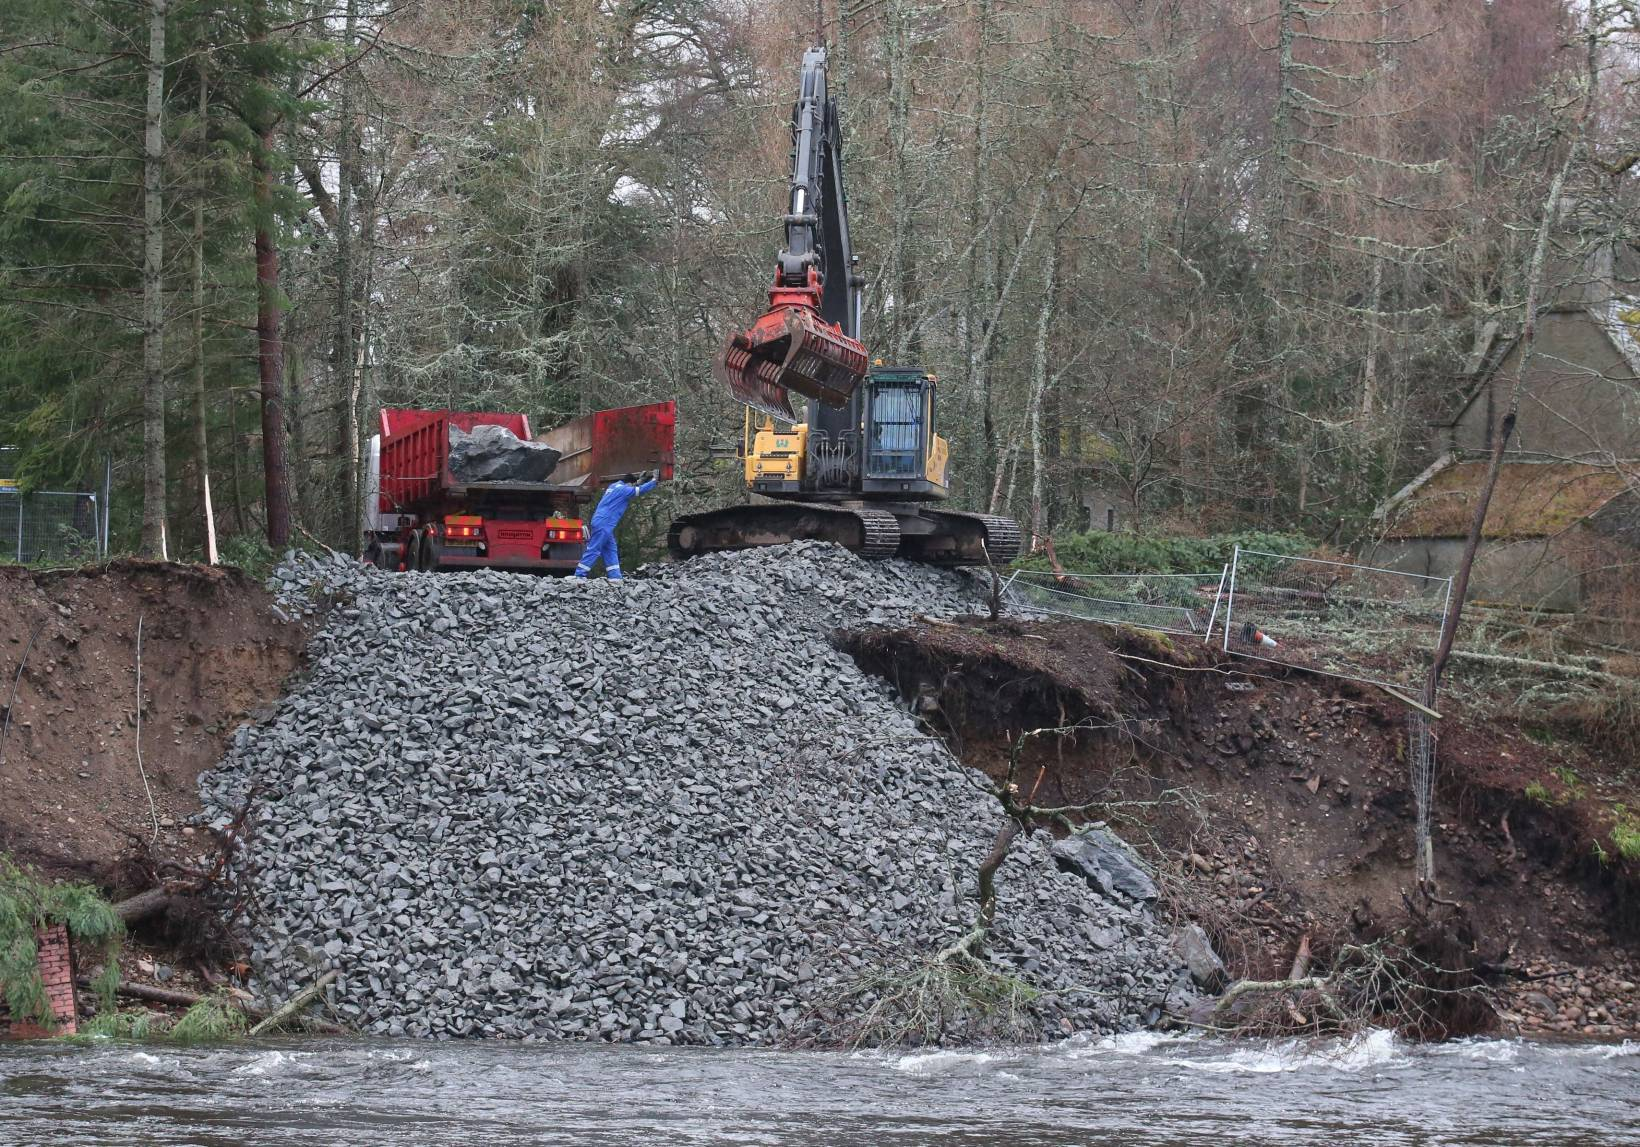 Rocks and boulders are moved to protect the shoreline on the River Dee after Abergeldie Castle came close to being washed away in storms last week.